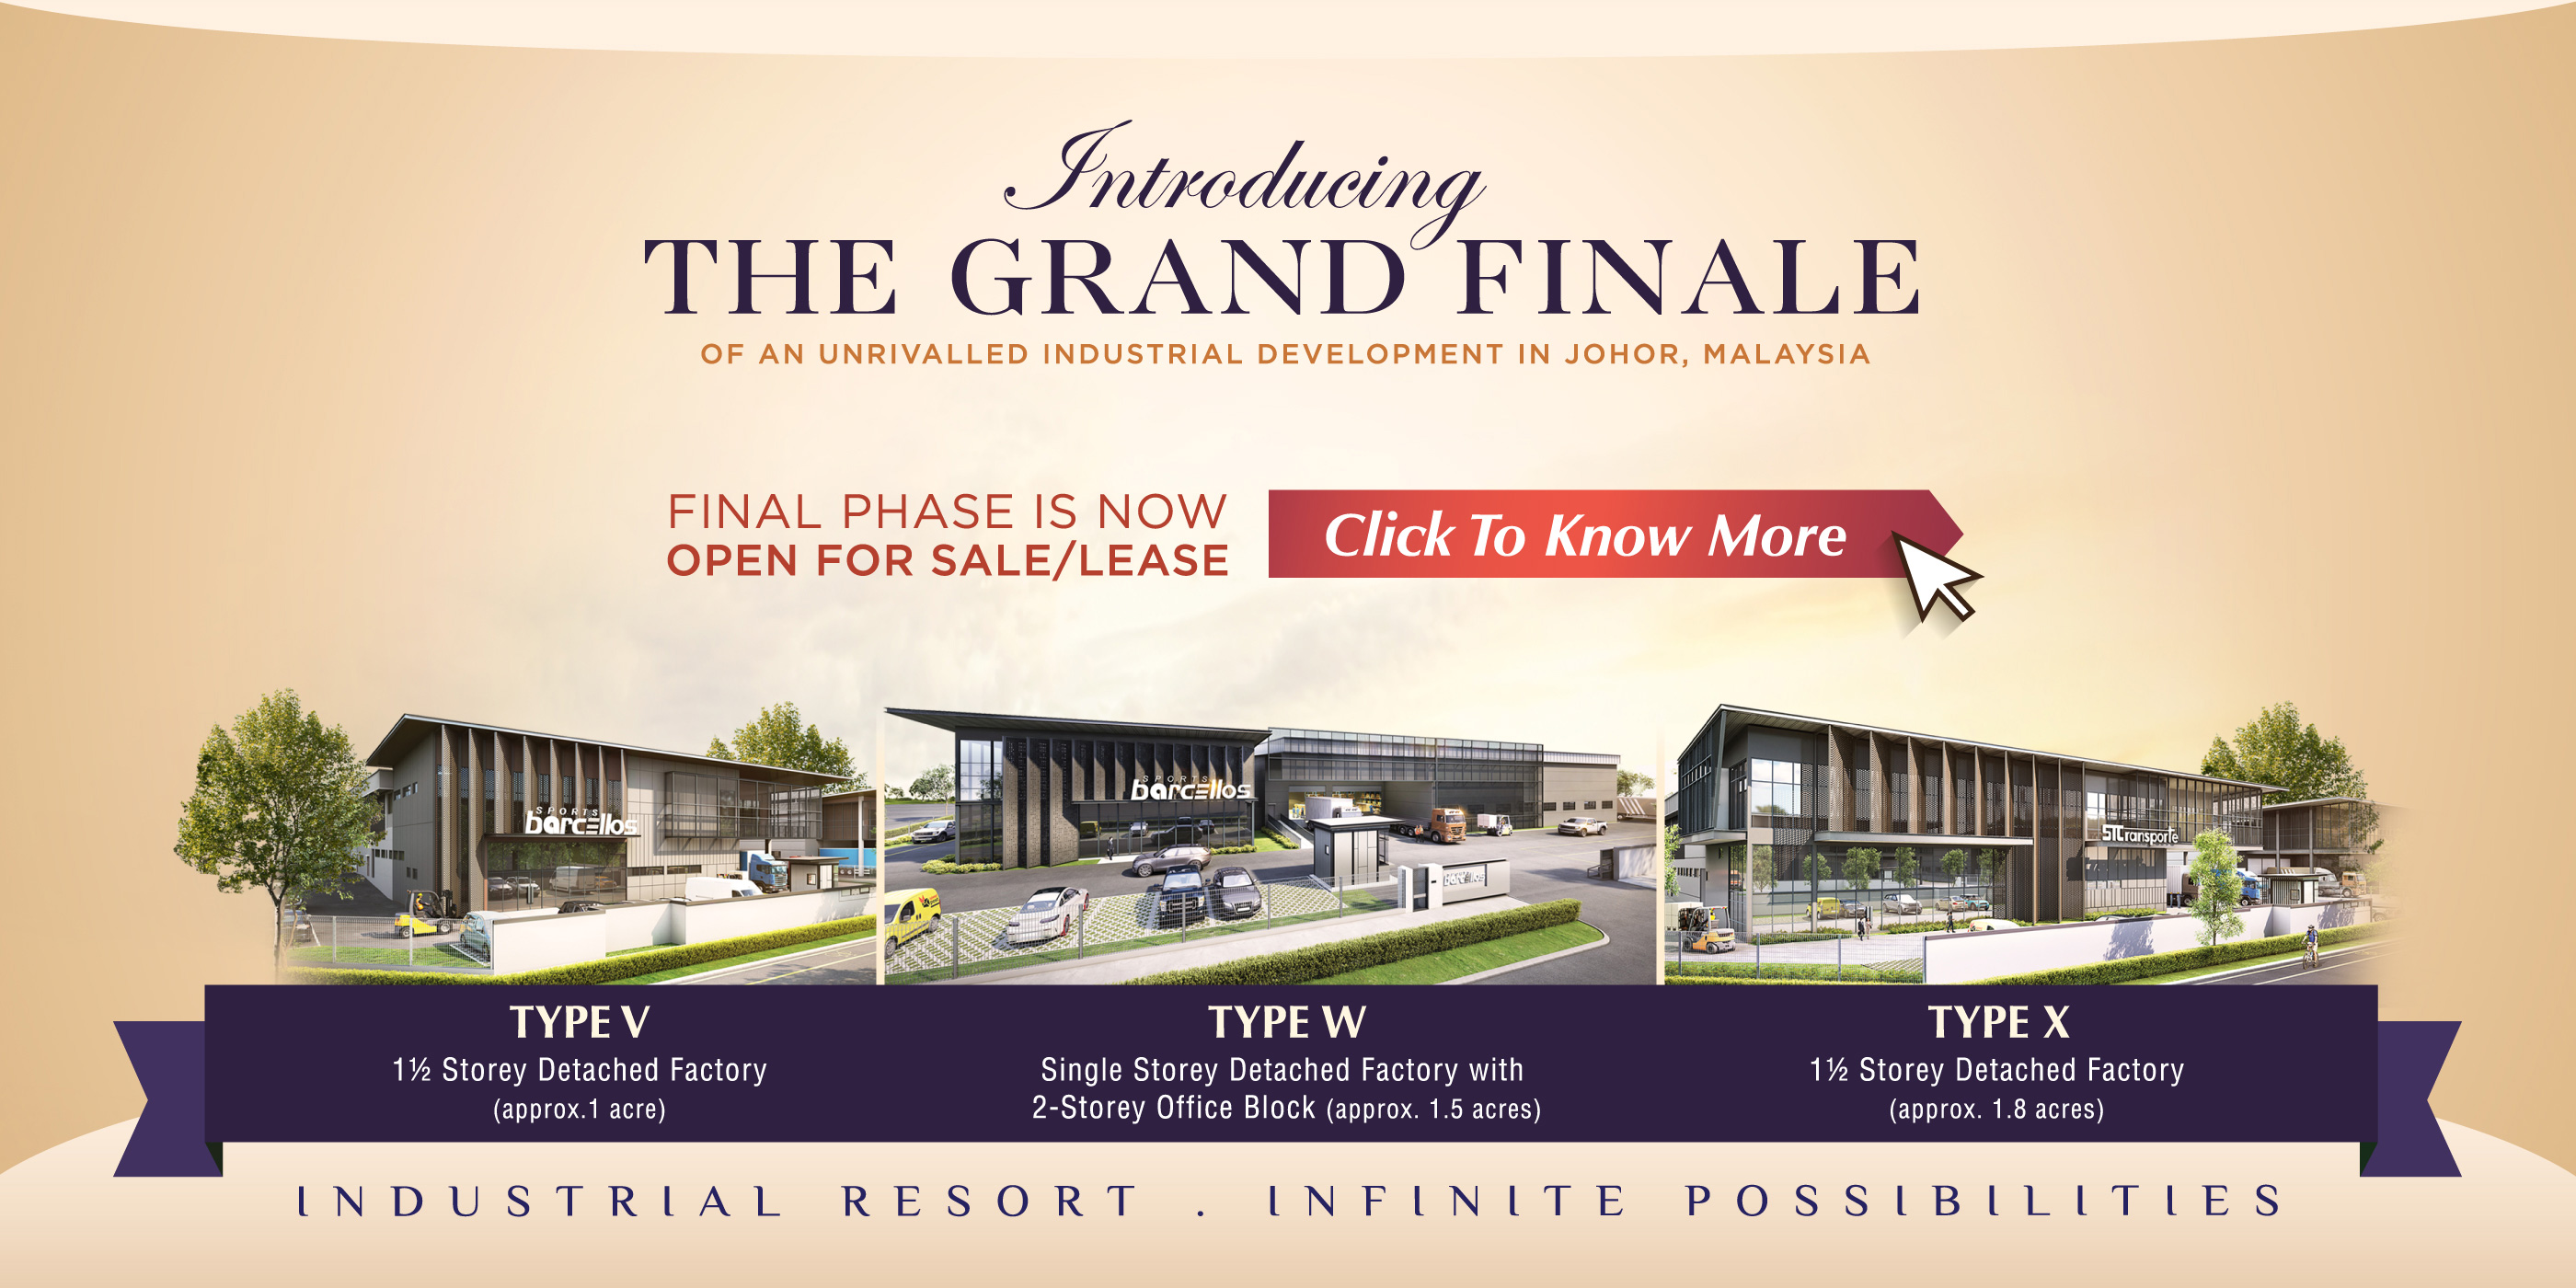 Introducing The Grand Finale